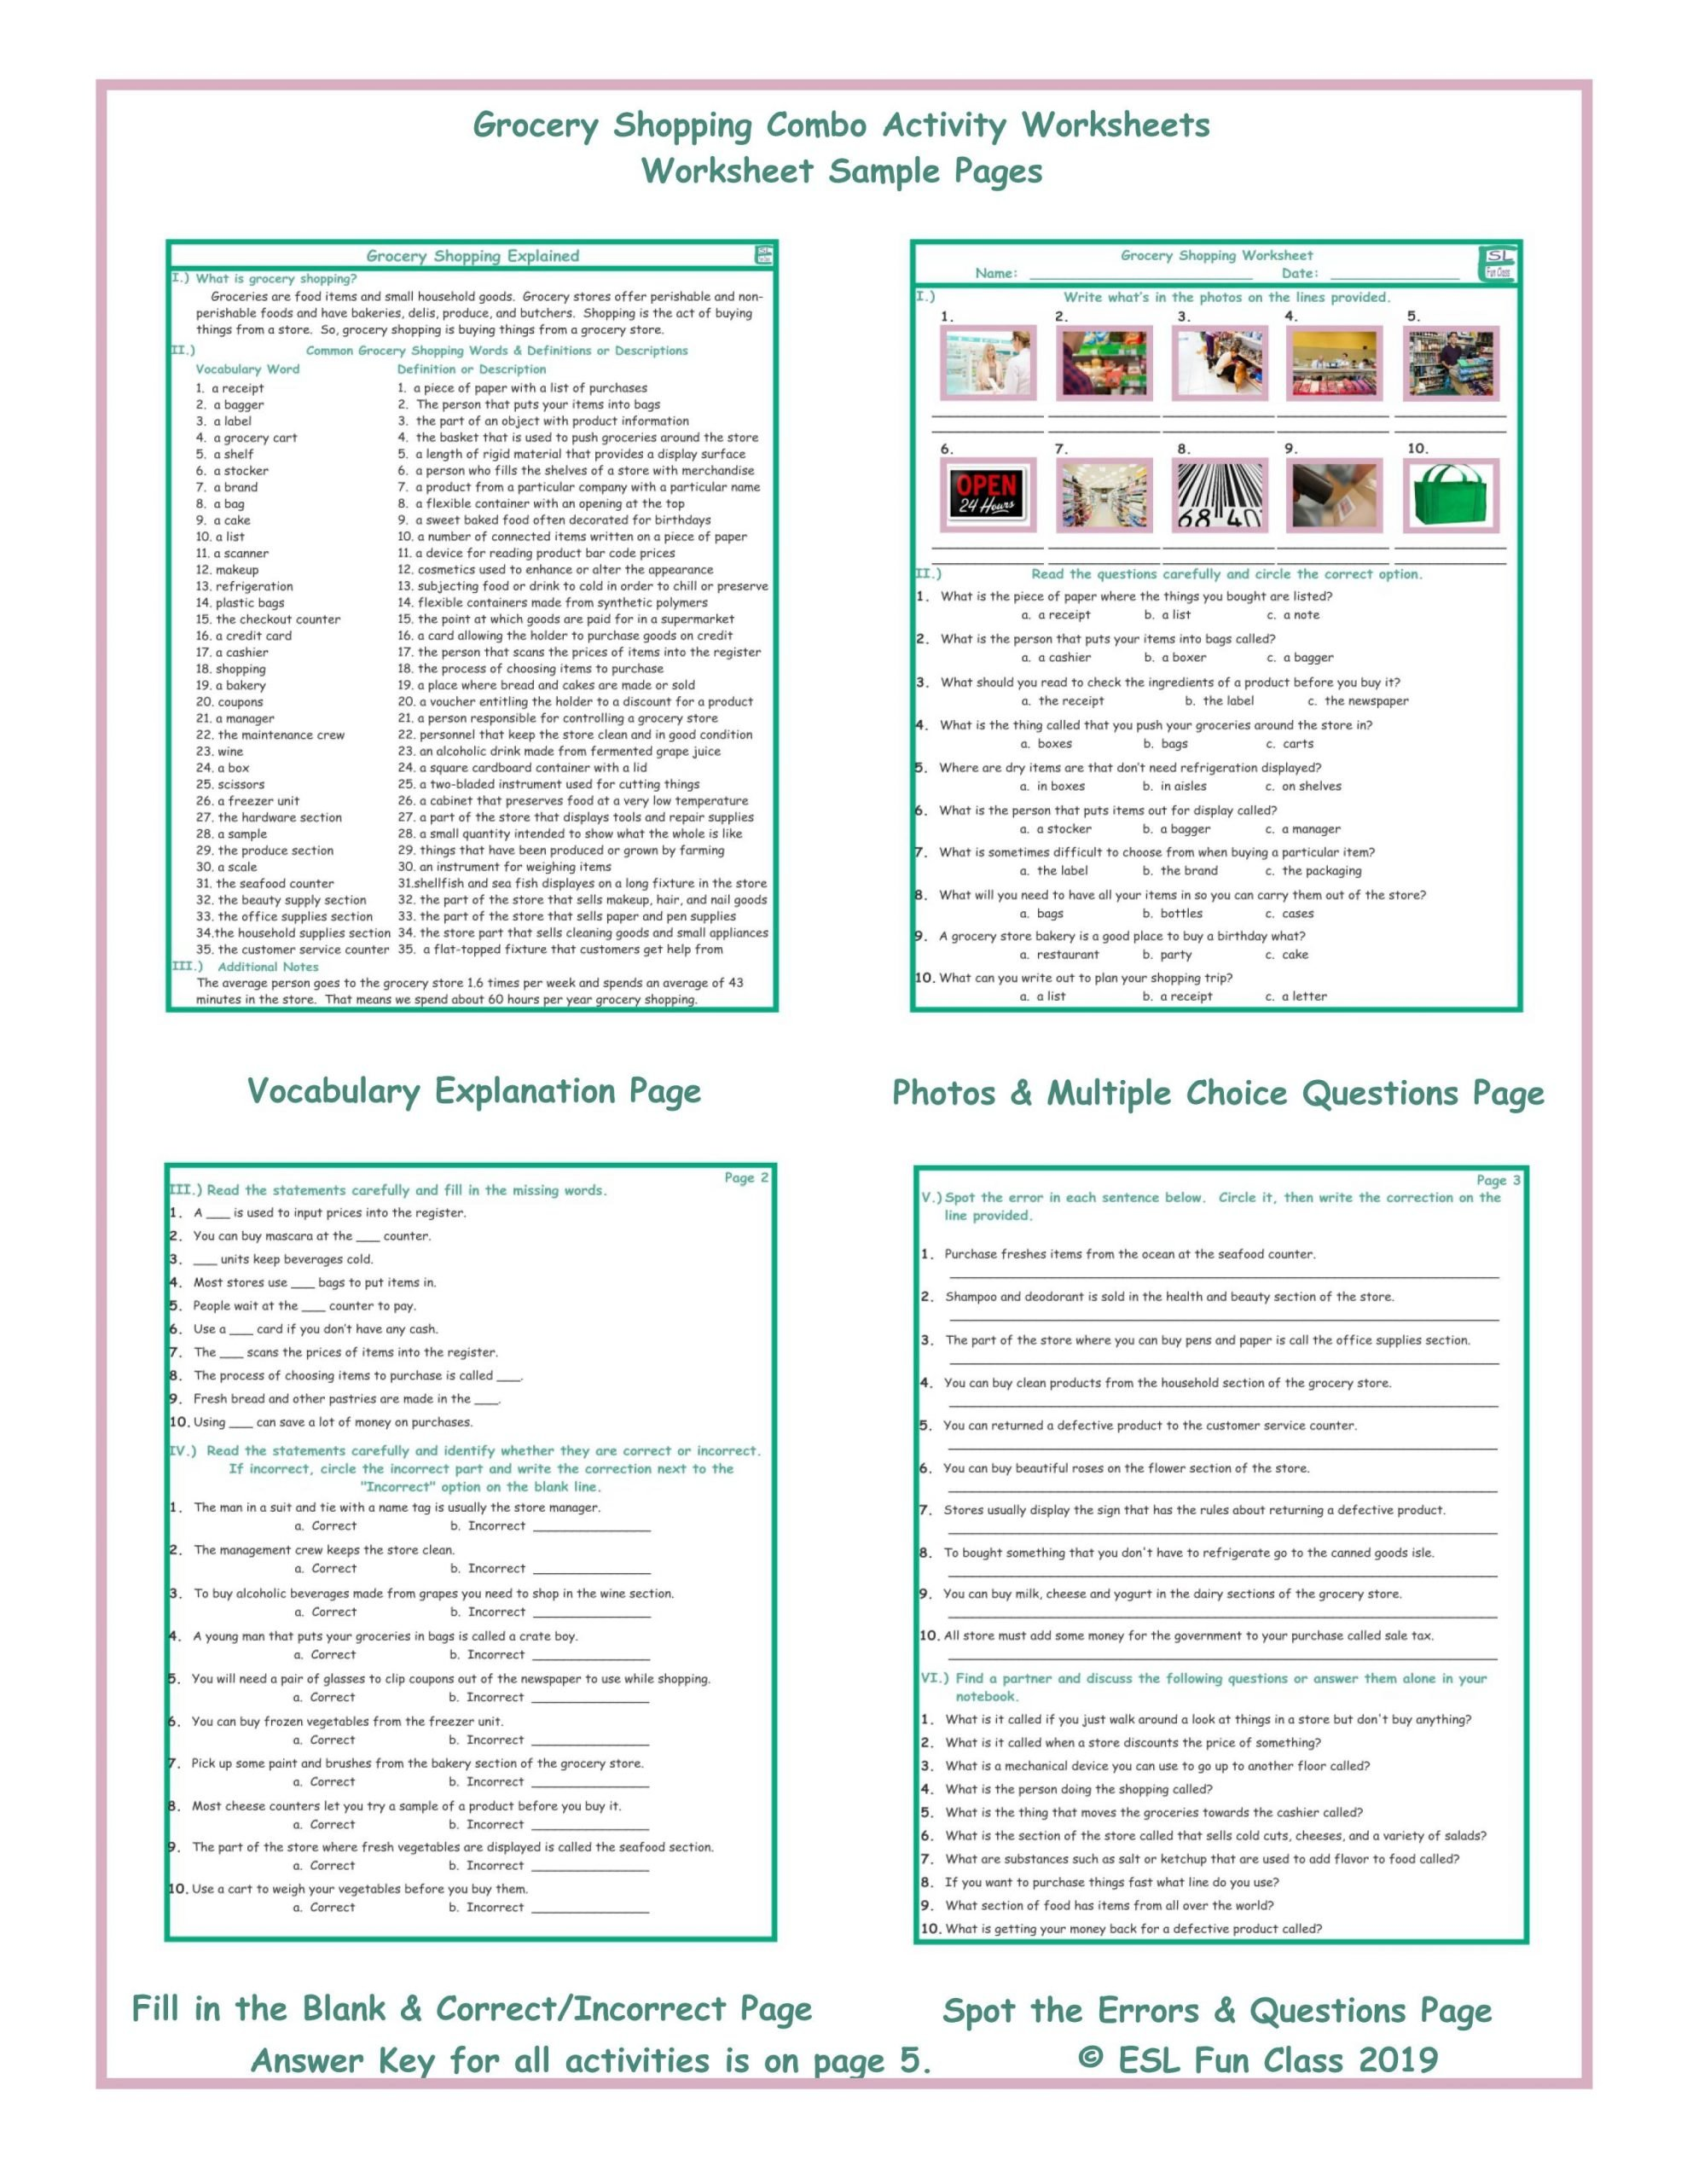 Grocery Shopping Worksheets Grocery Shopping Bo Activity Worksheets